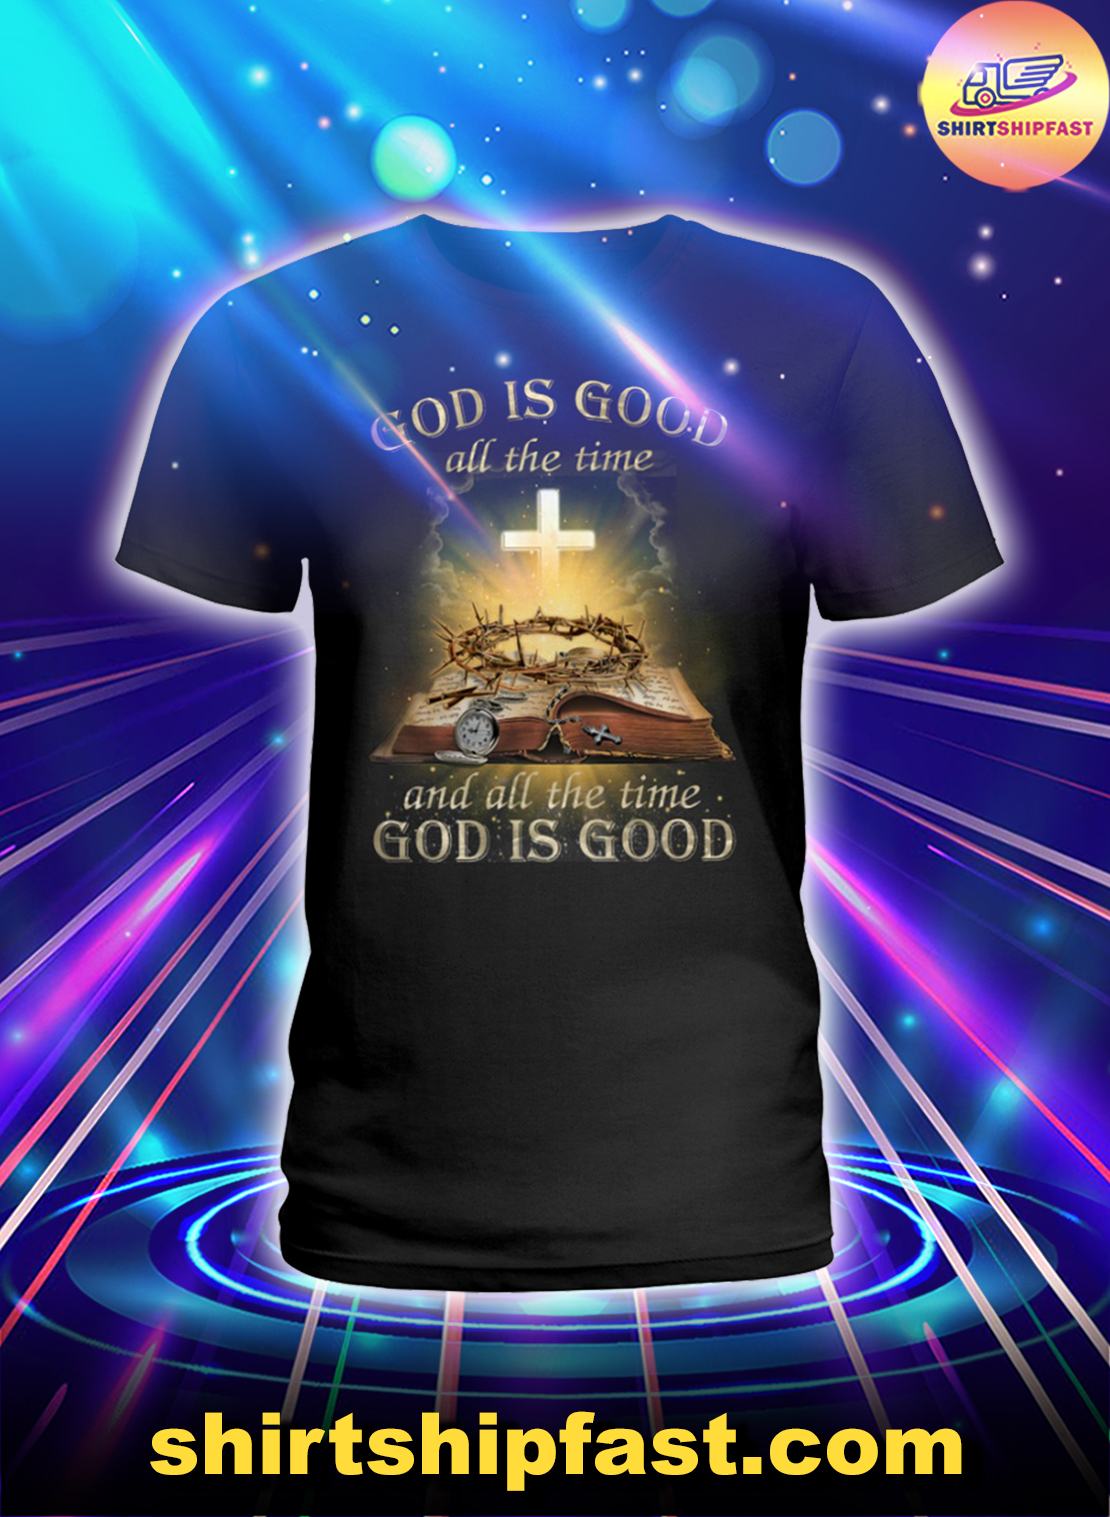 God is good all the time annd all the time god is good lady shirt